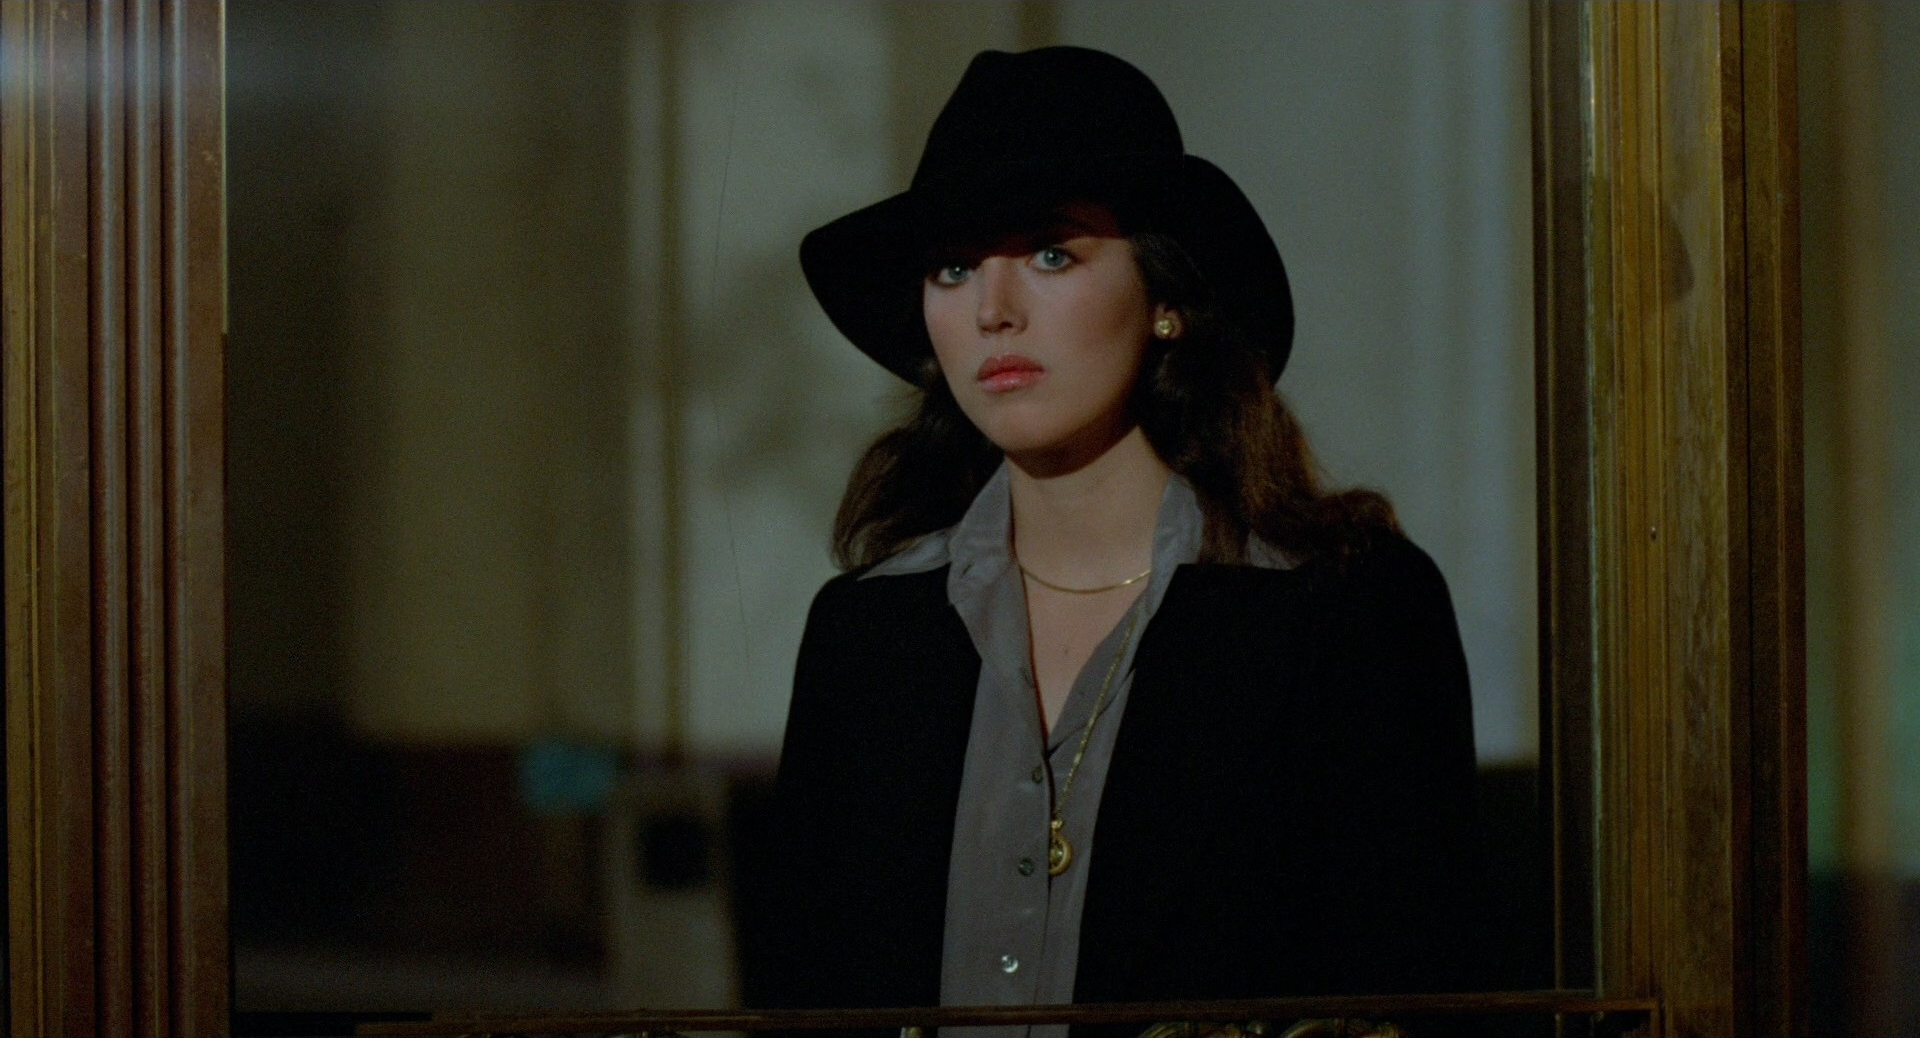 The Driver - Isabelle Adjani